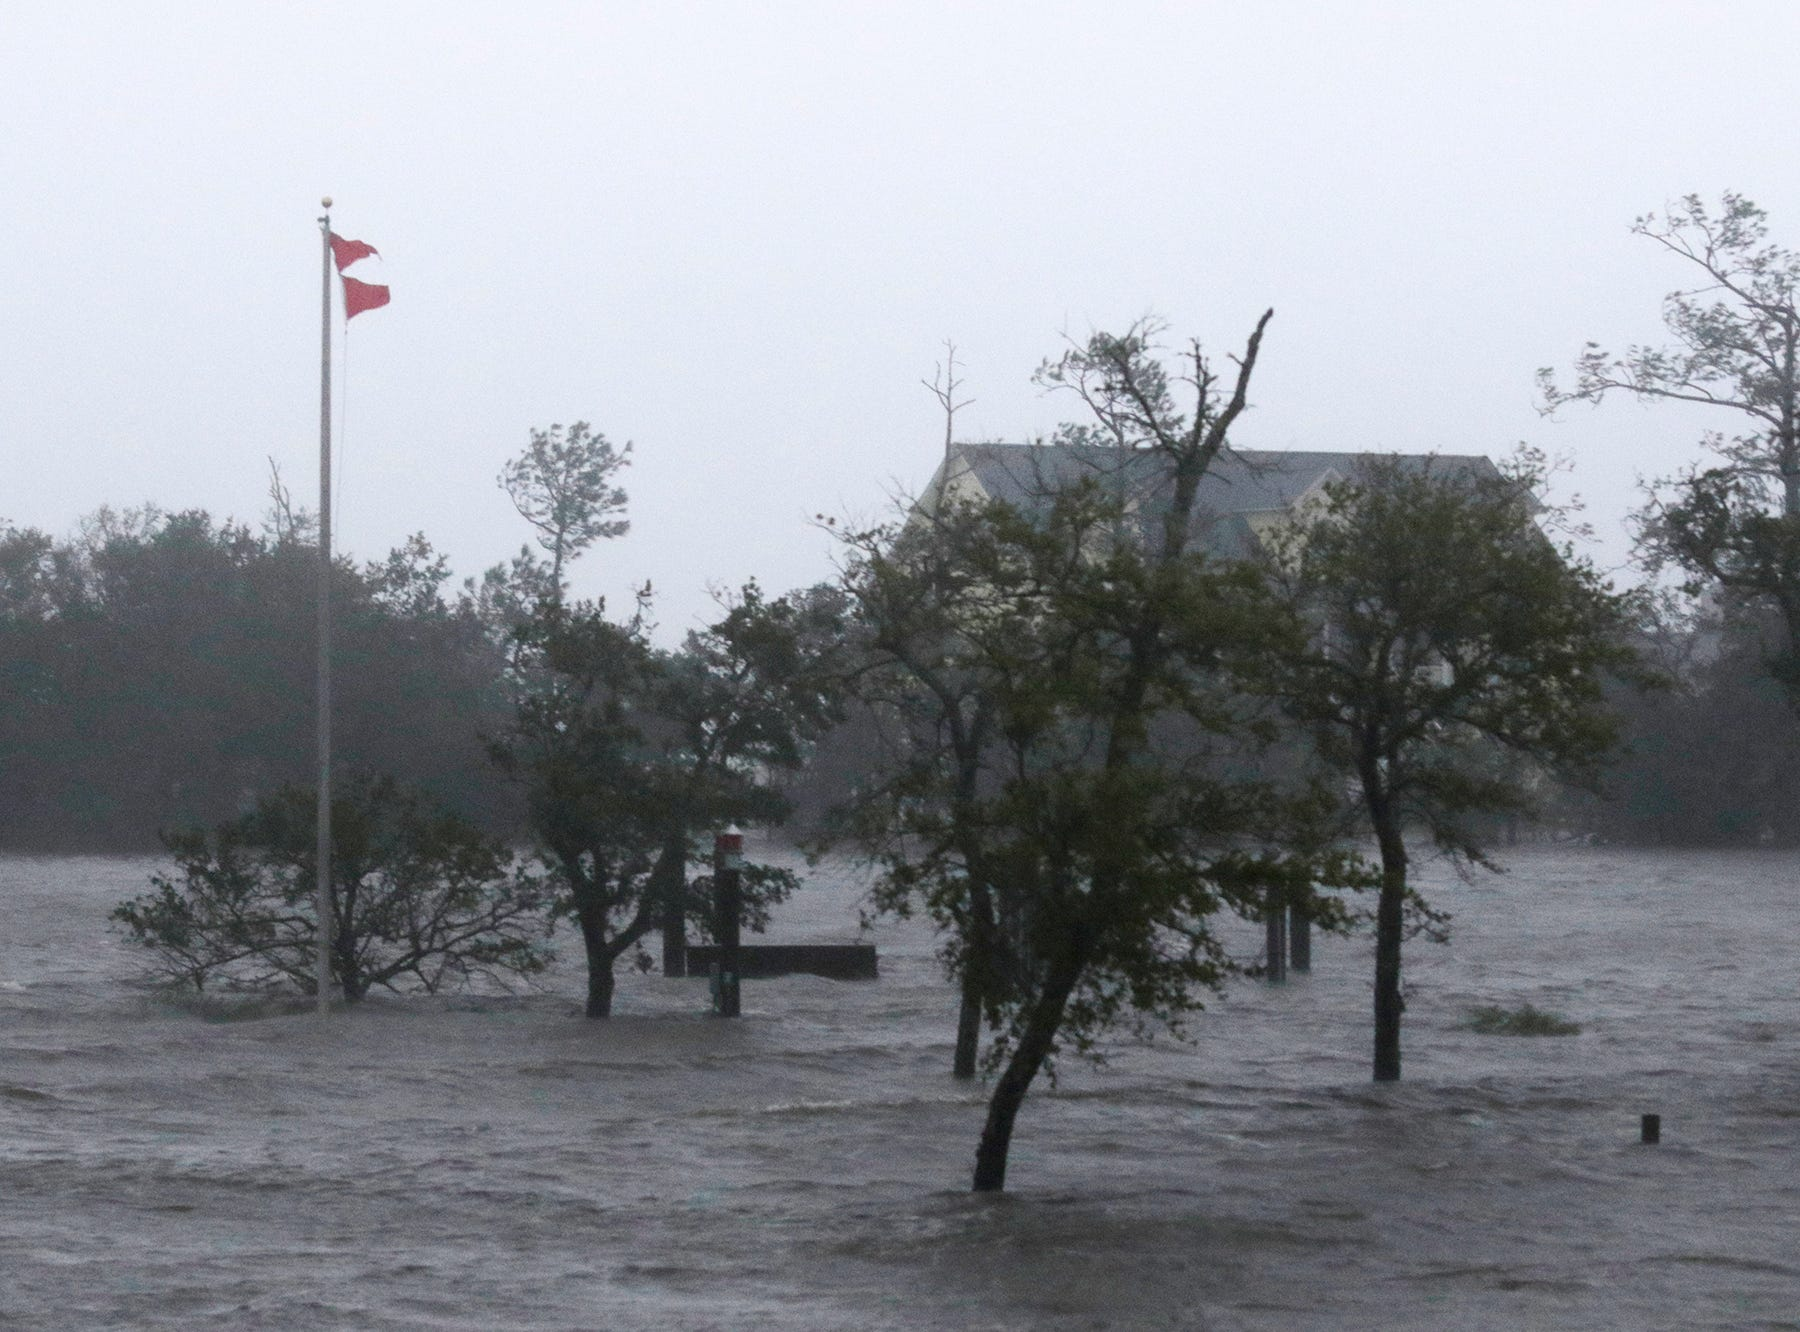 High winds and storm surge from Hurricane Florence hits Swansboro North Carolina on Sept. 14, 2018.